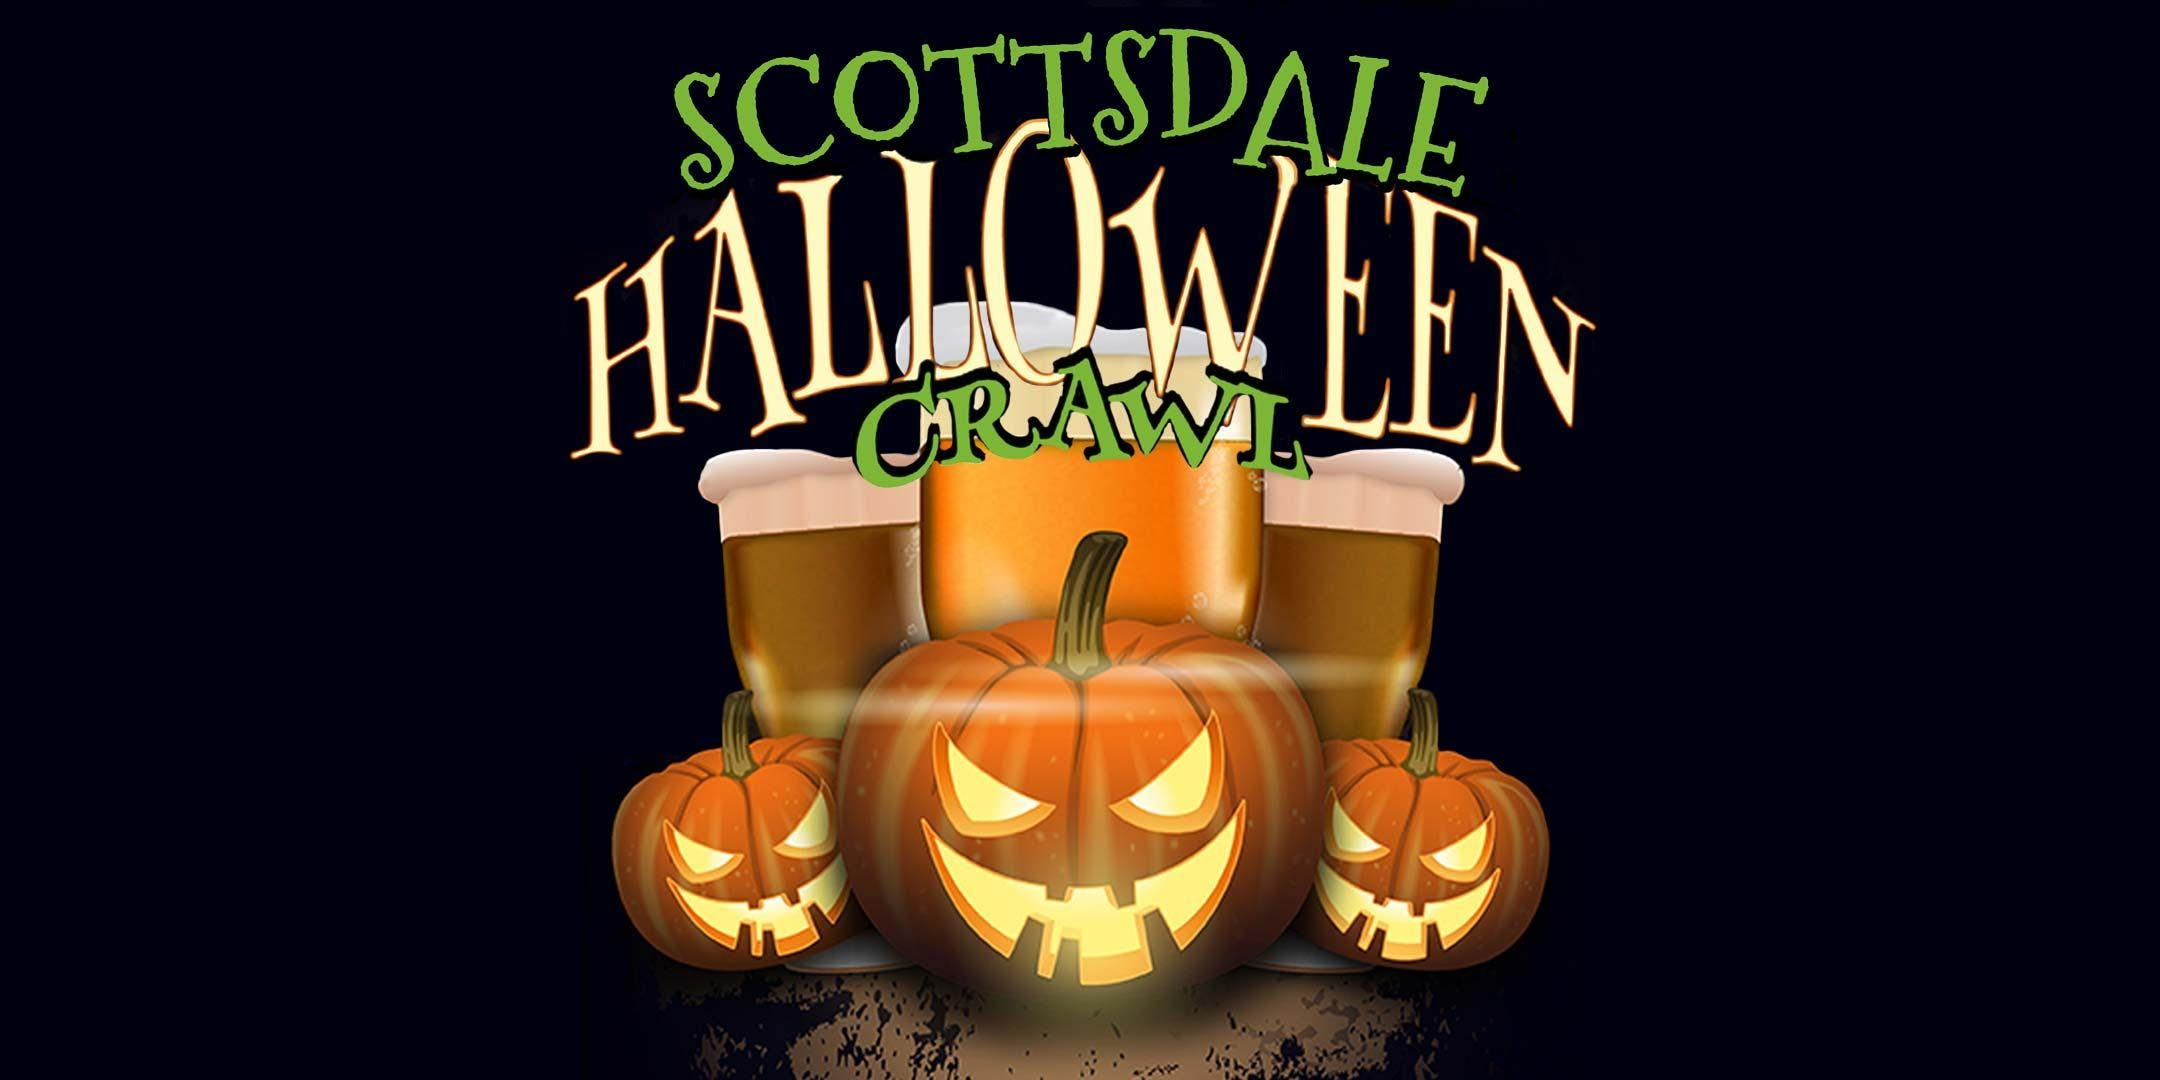 Scottsdale Halloween Crawl - Sat. Oct. 26th in Old Town